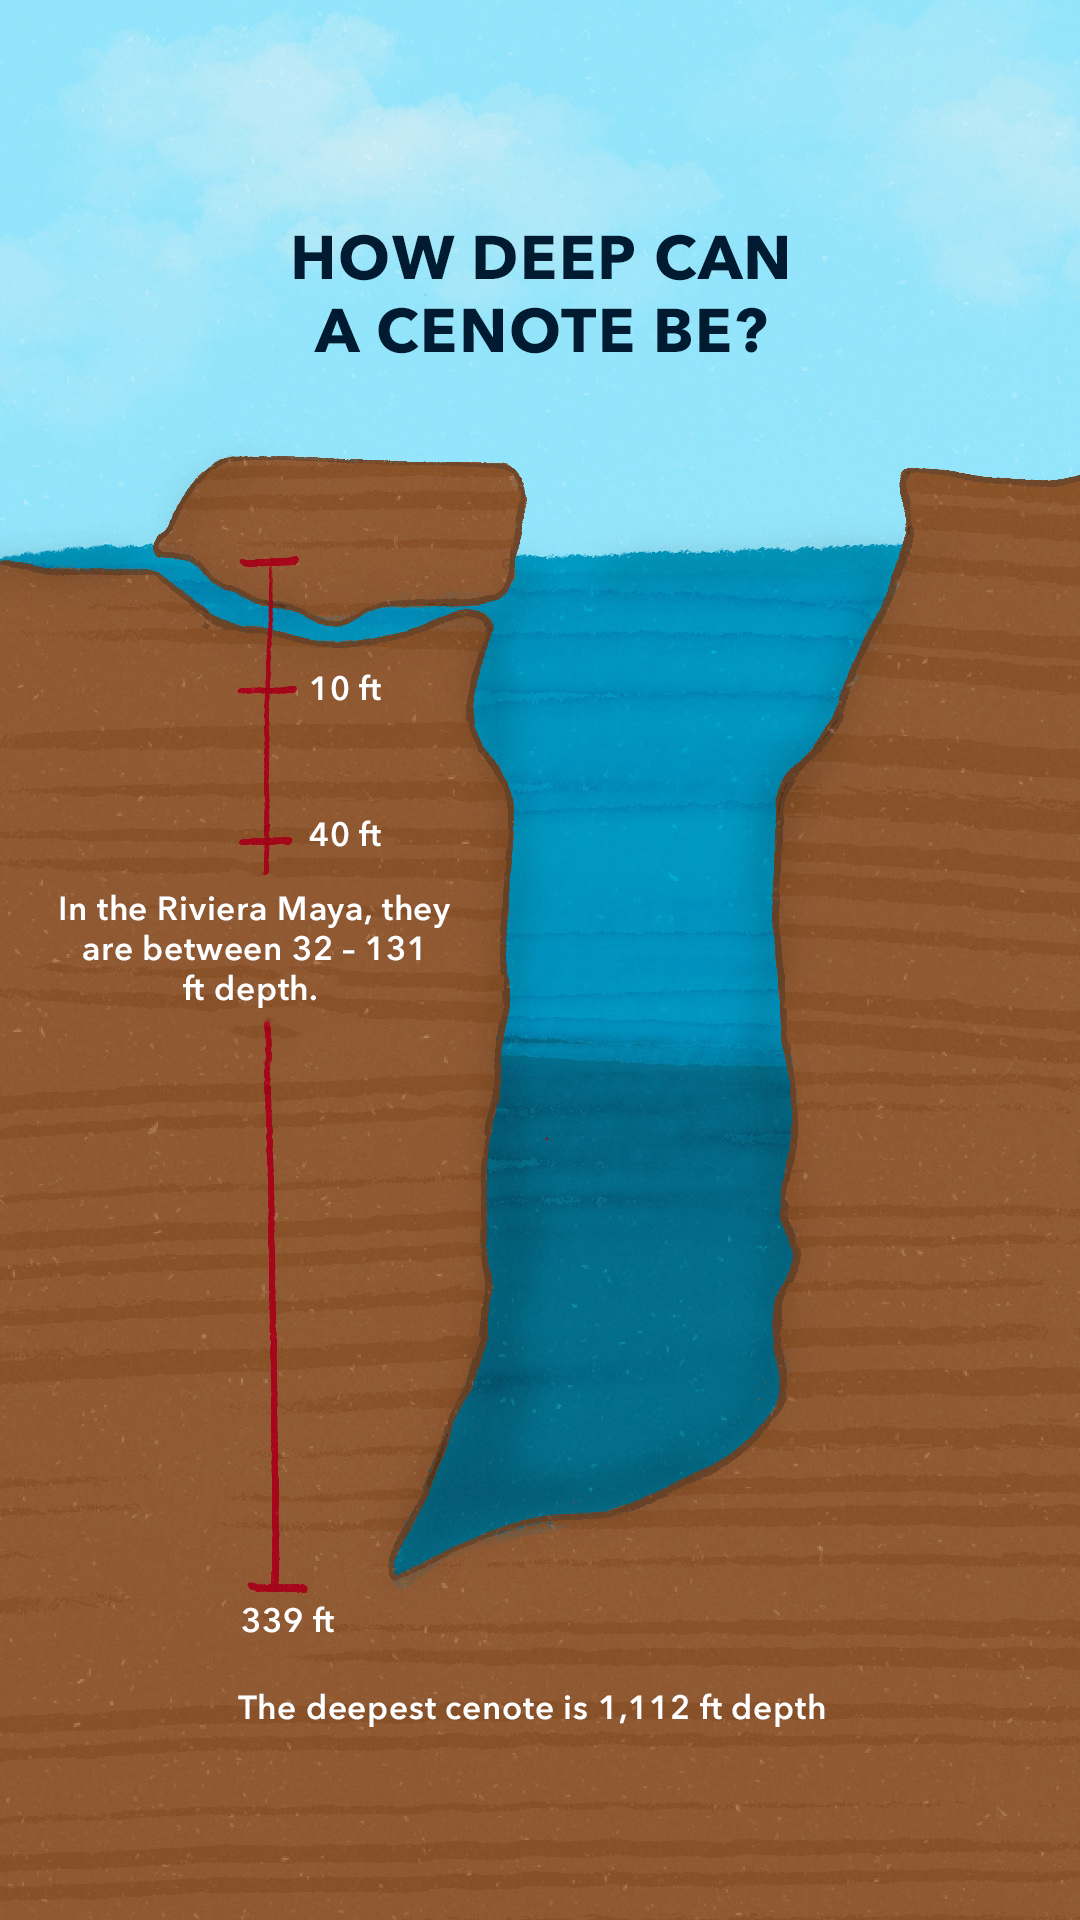 How deep is a cenote?